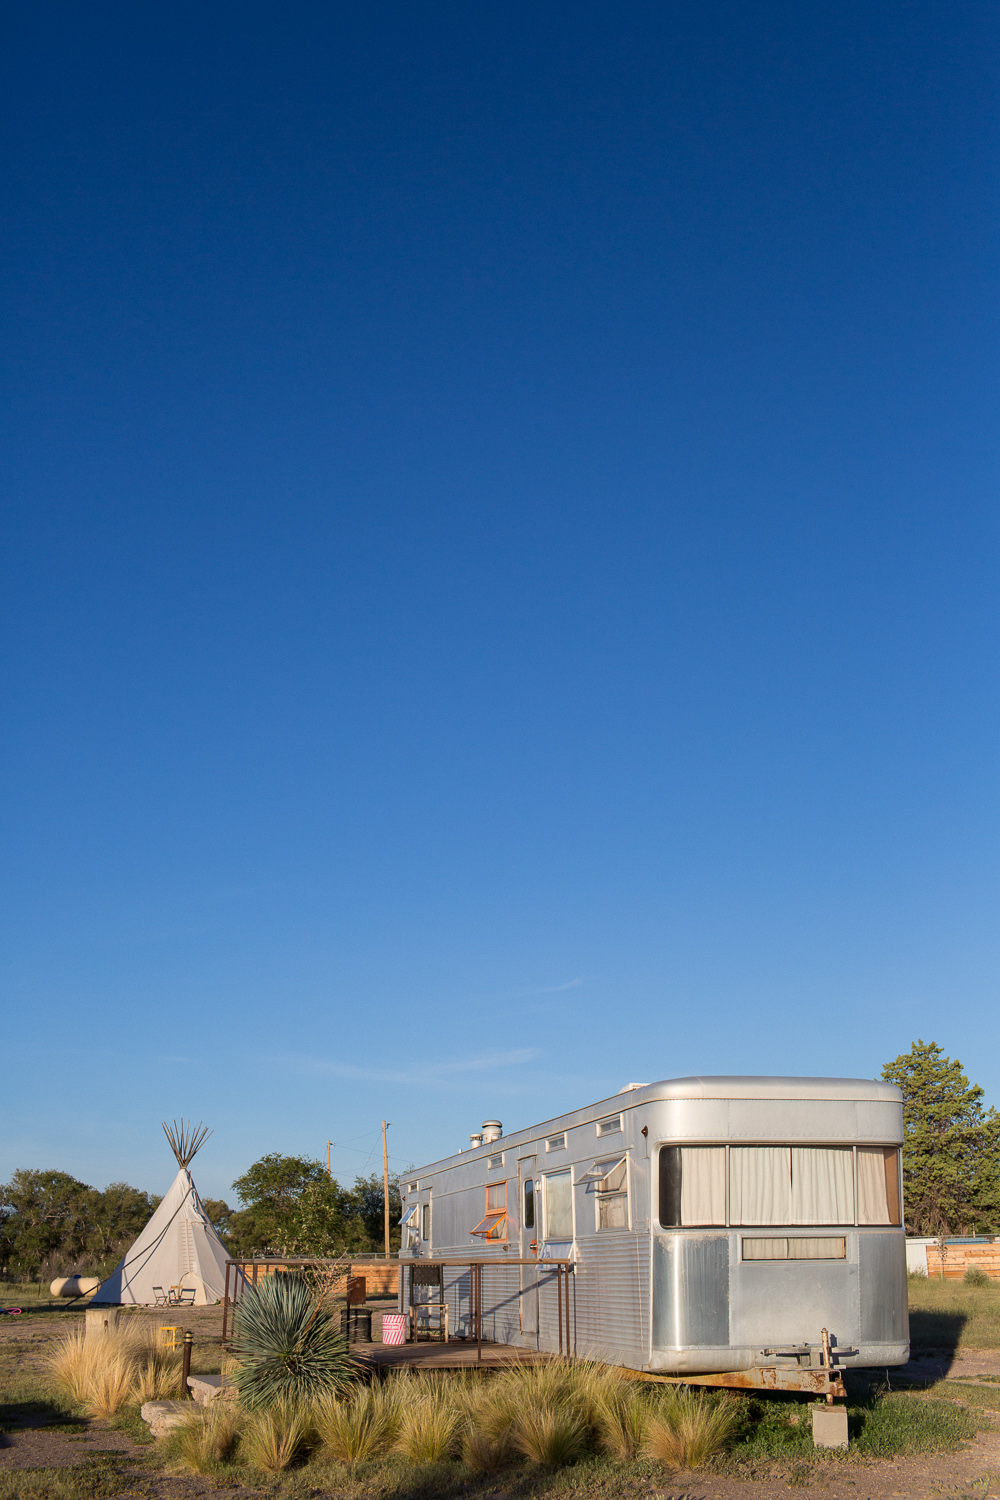 Trip to Marfa Texas-26.jpg